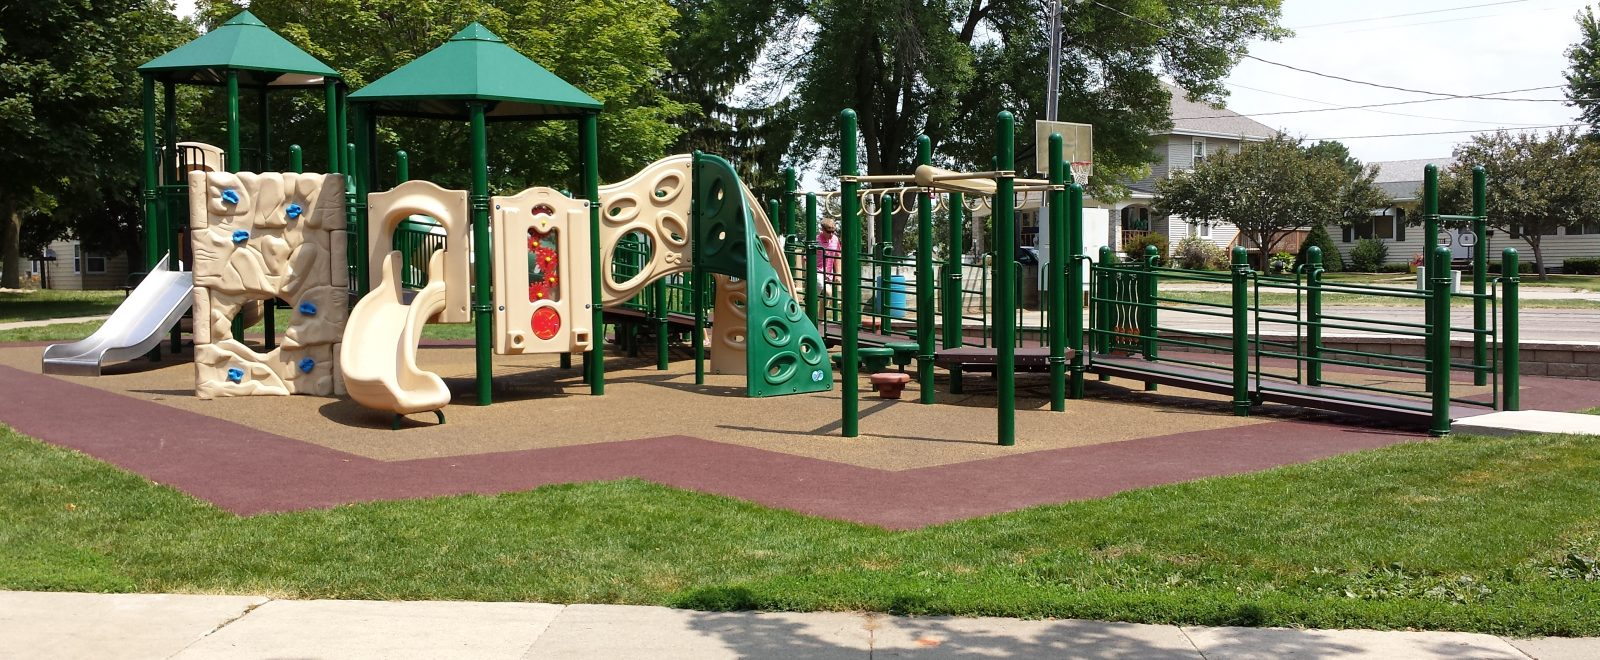 city park all inclusive playground